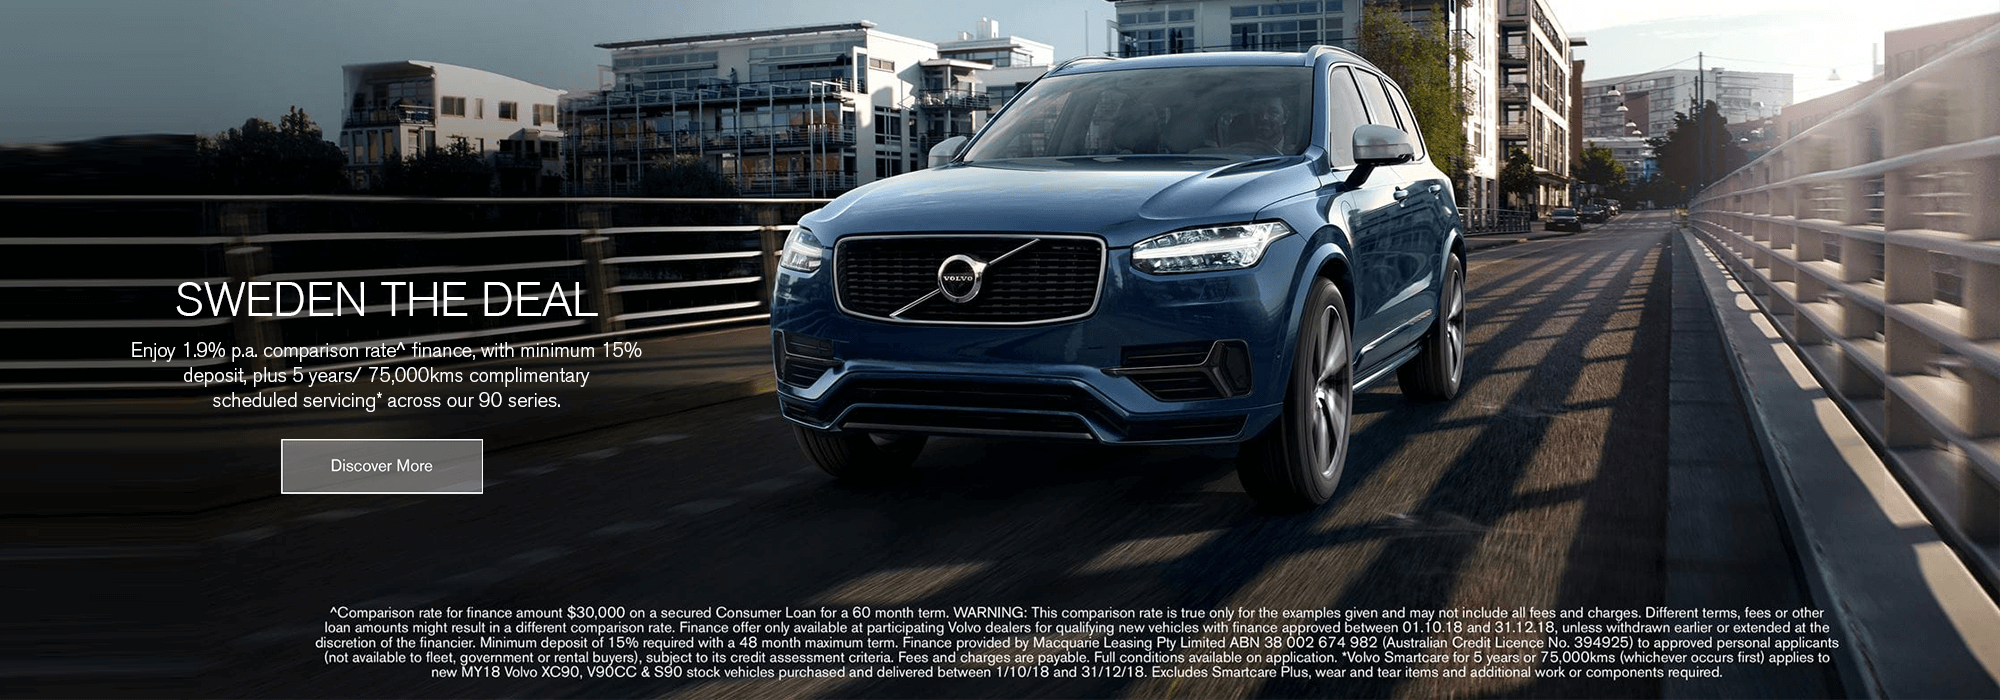 Visit your local Volvo dealer before October 30 to take advantage of 1.9%­ p.a. comparison rate^ finance with a 15% deposit across the entire Volvo 90 series, but do it before September 30. Offer on while stocks last.